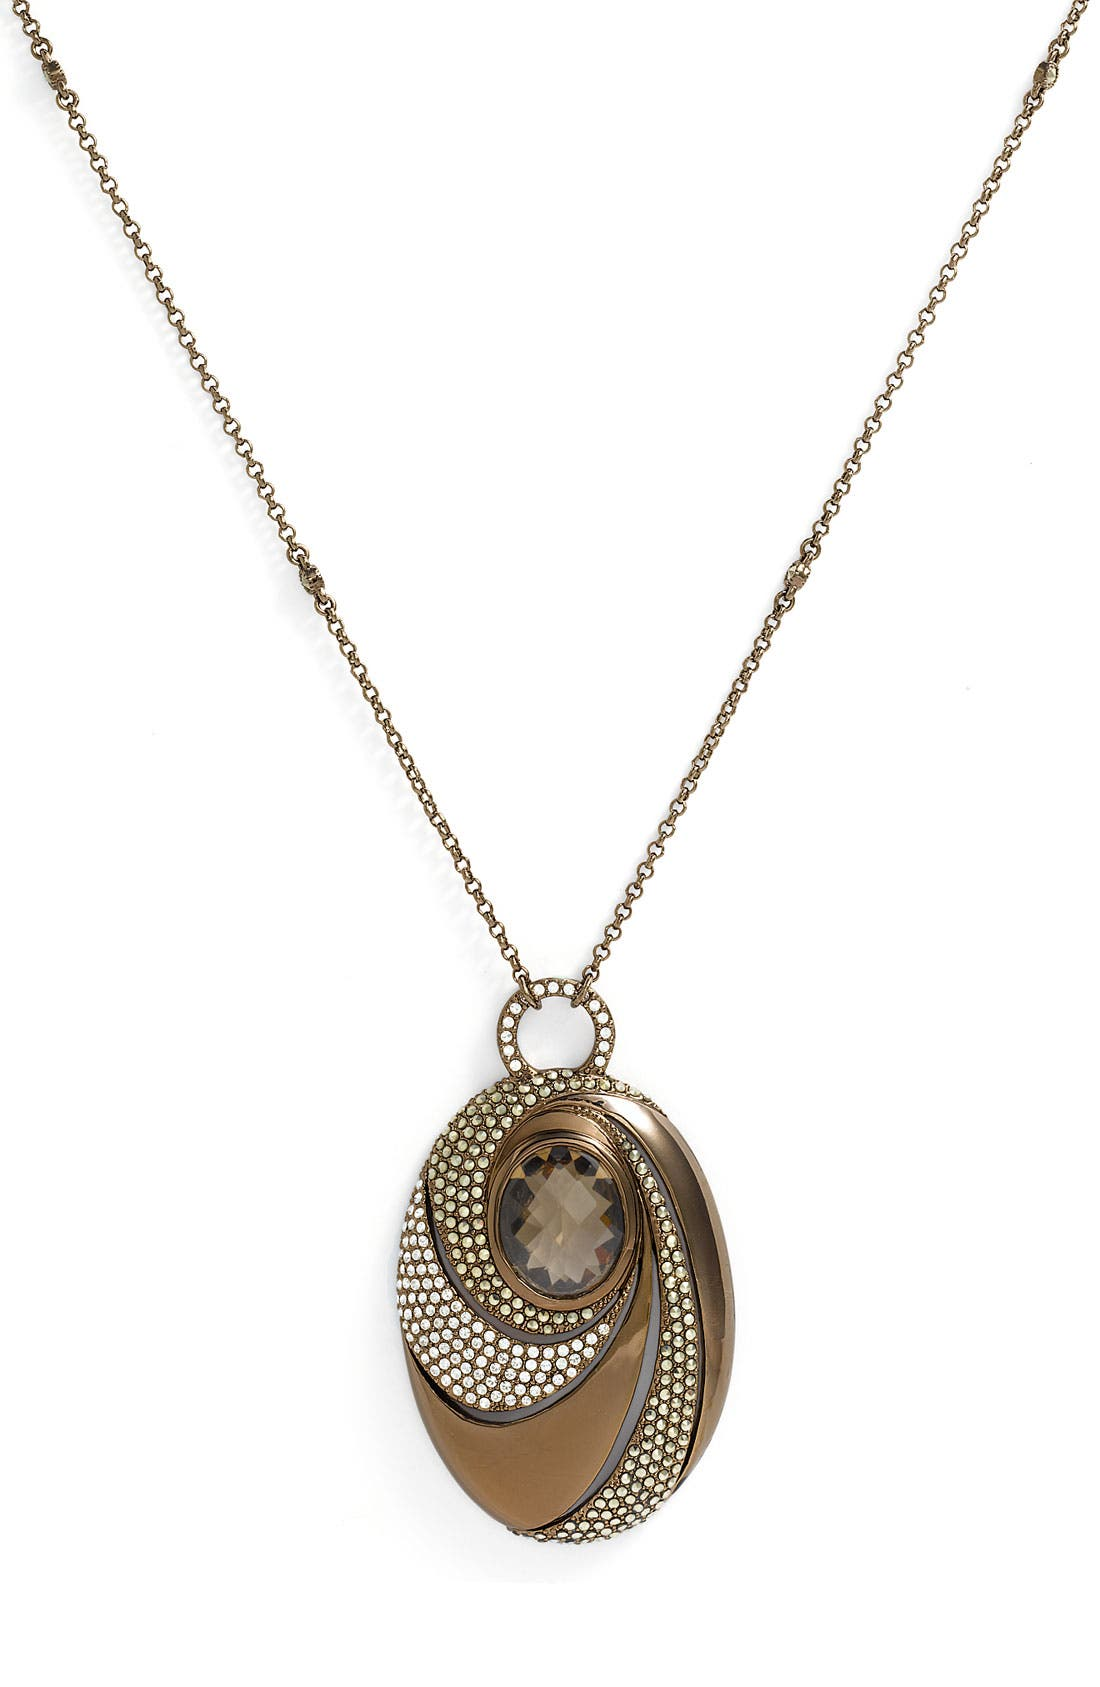 Main Image - Judith Jack 'Twister' Convertible Statement Pendant Necklace